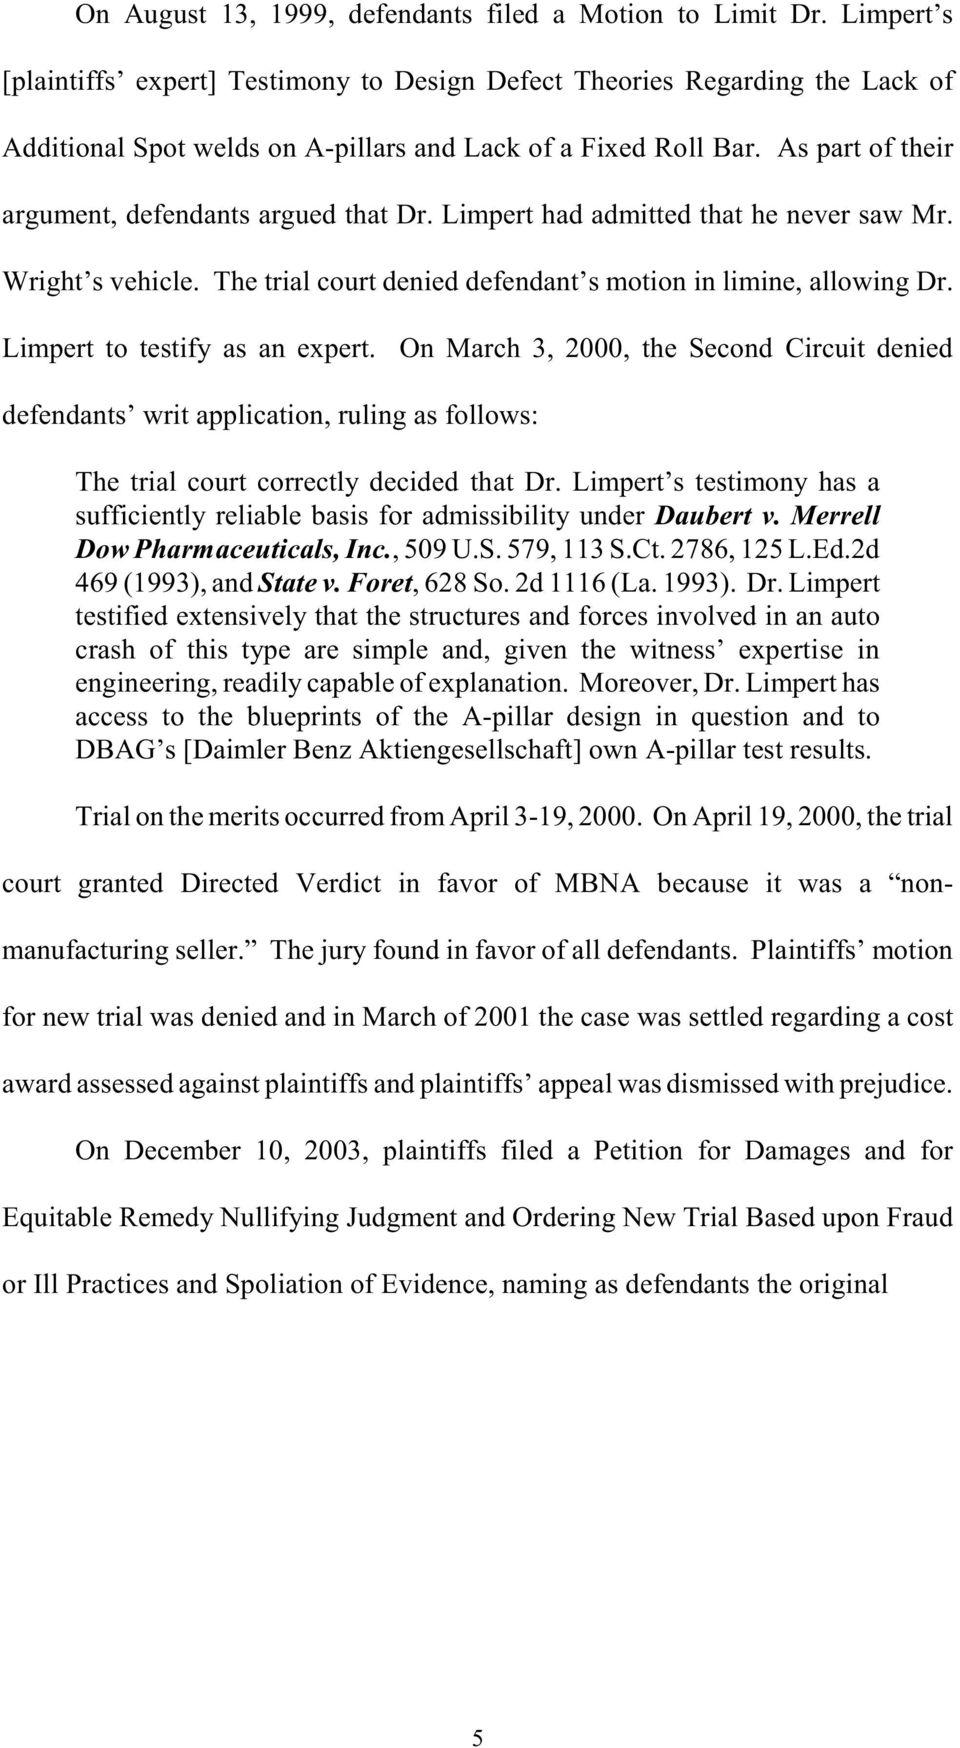 As part of their argument, defendants argued that Dr. Limpert had admitted that he never saw Mr. Wright s vehicle. The trial court denied defendant s motion in limine, allowing Dr.